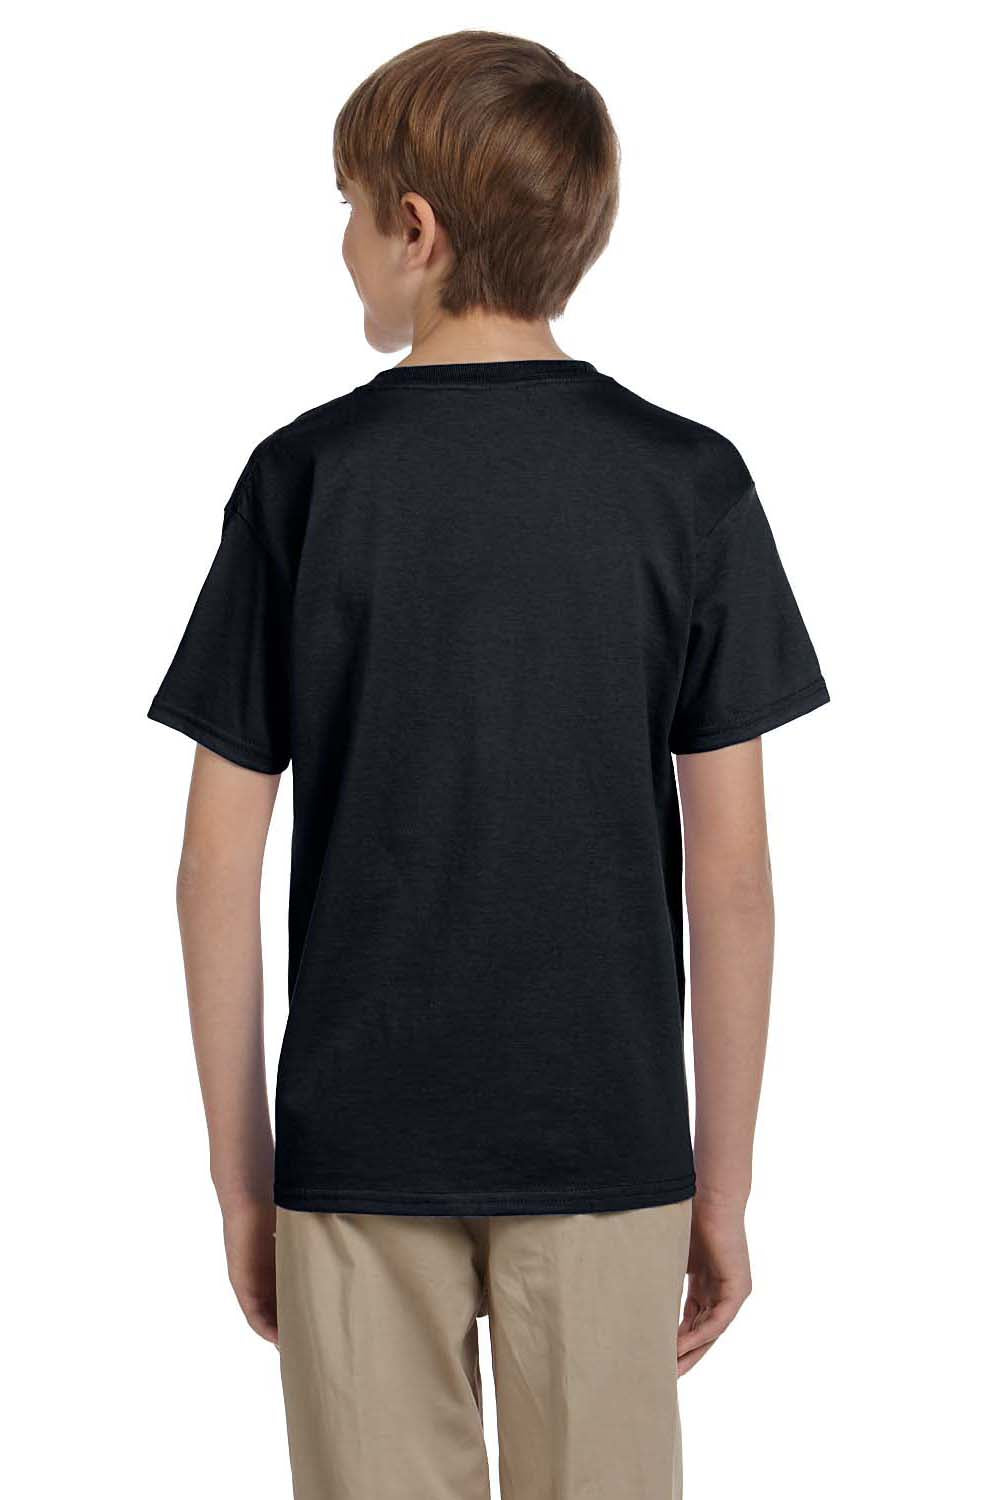 Hanes 5370 Youth EcoSmart Short Sleeve Crewneck T-Shirt Black Back